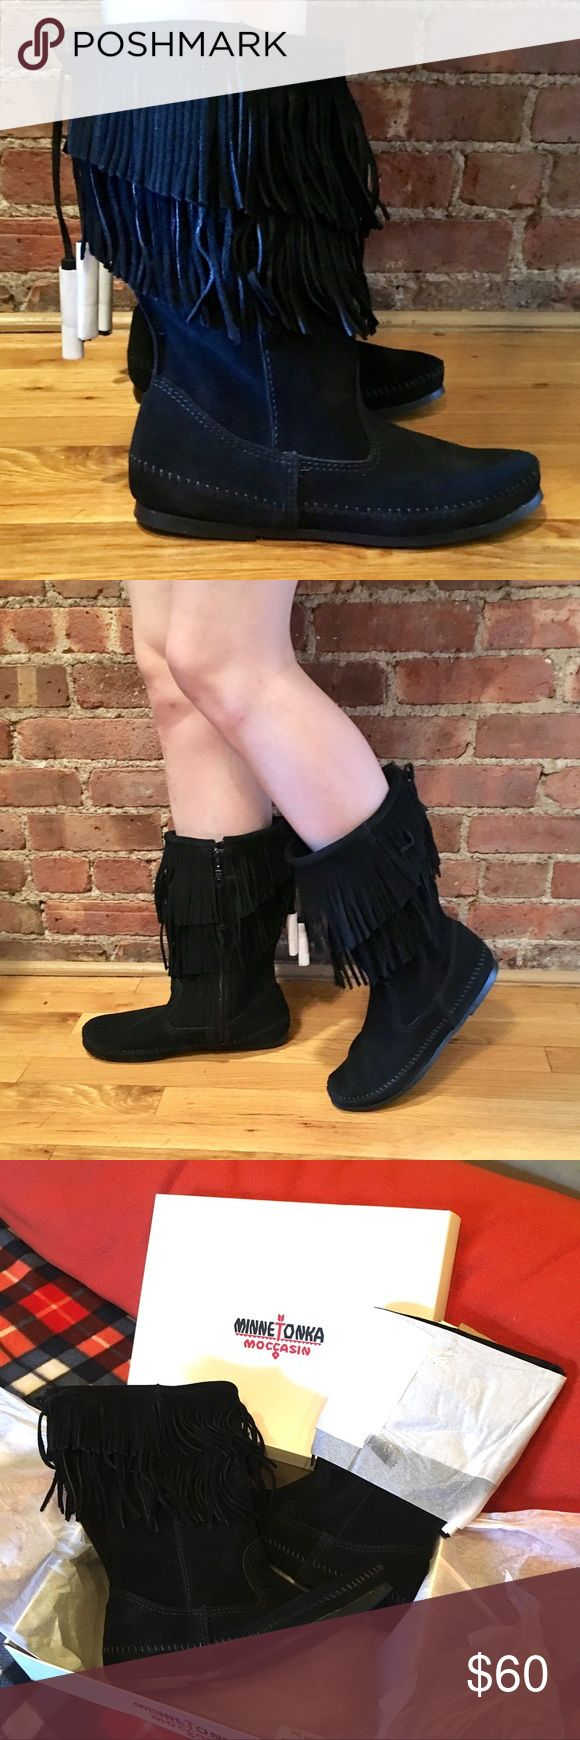 Minnetonka 1689 Double Layer Fringe Moccasin Boot Rare to find!! Mid-calf moccasin style with an adjustable, tasseled back tie to give added room for wear with jeans and skirts alike. Soft suede leather and thin rubber sole will make these the comfiest go-to in your closet! Size 10, but best fits a size 9. Will expand with wear.  Approx. 1'' heel height Approx. 11½'' boot shaft height Asymmetrical fringe details Cushioned footbed Inside zipper  Never worn, new with box! Minnetonka Shoes…